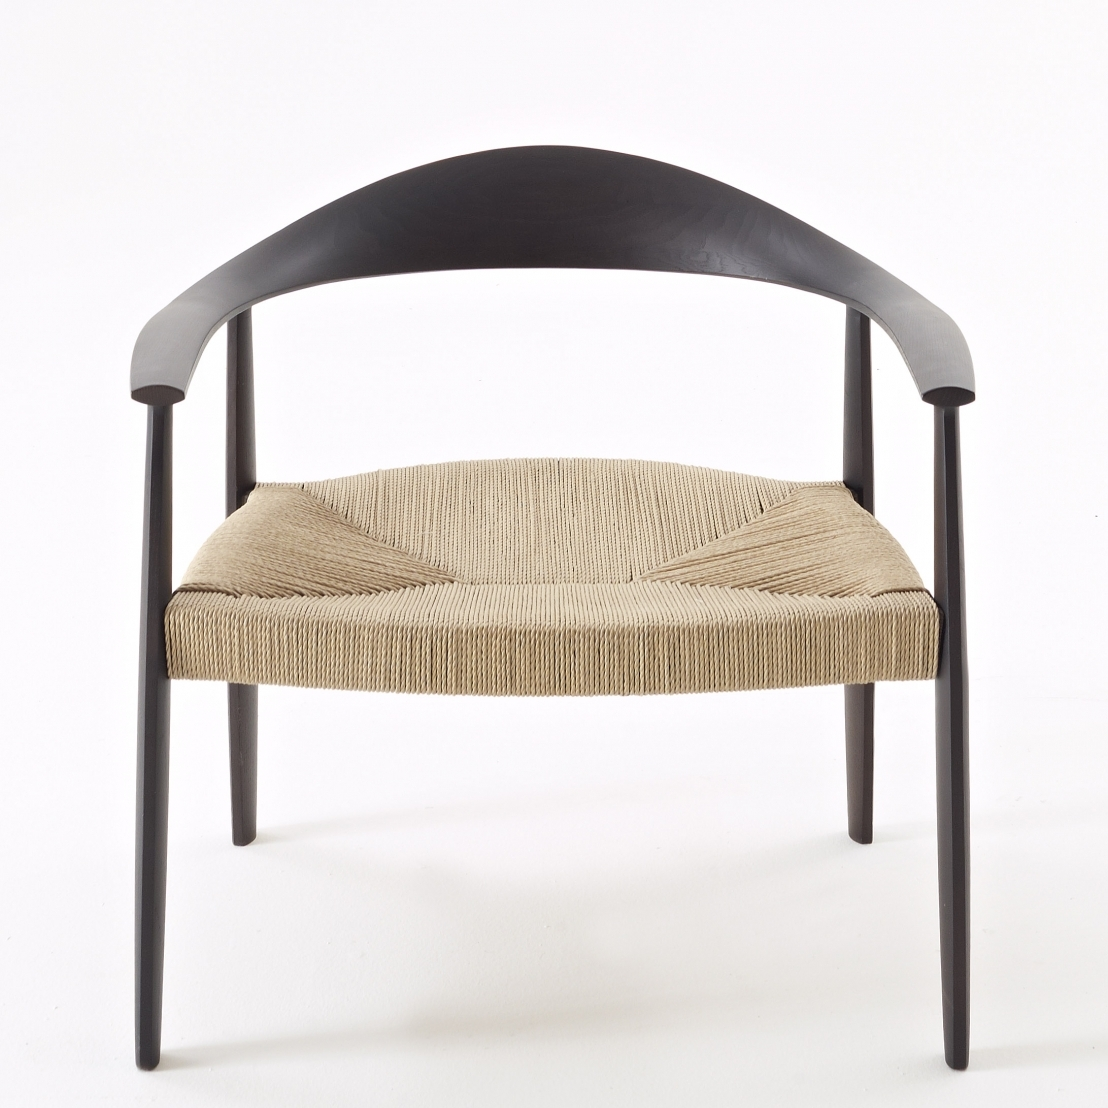 Armchair with ash wood frame. Seat: hand-strowed or upholstered with fabric or leather.